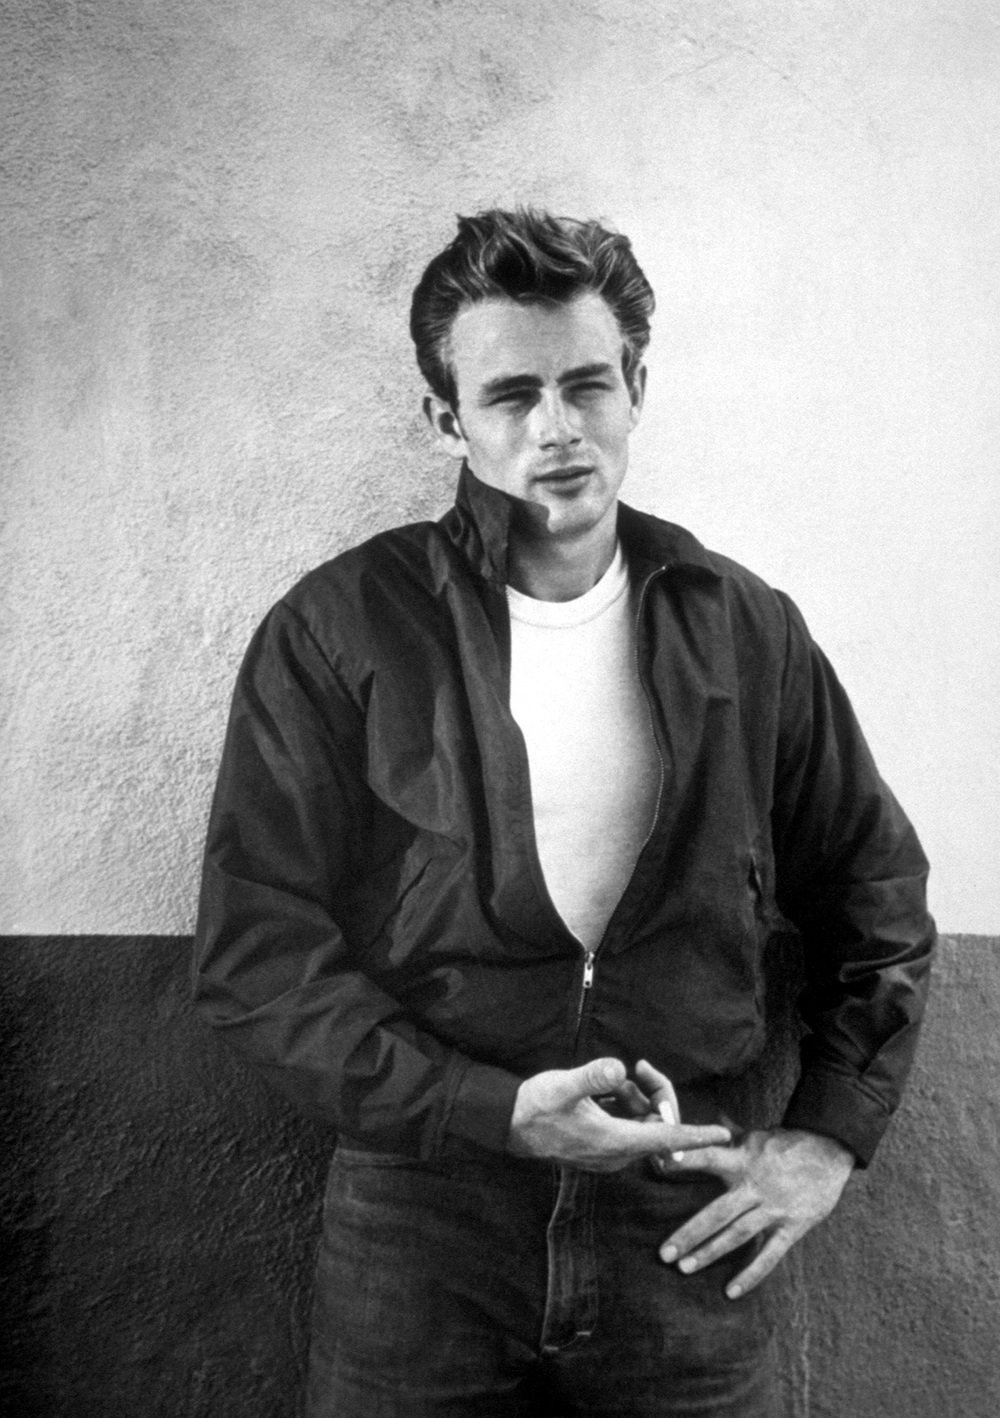 Annex - Dean, James (Rebel Without a Cause)_02.jpg